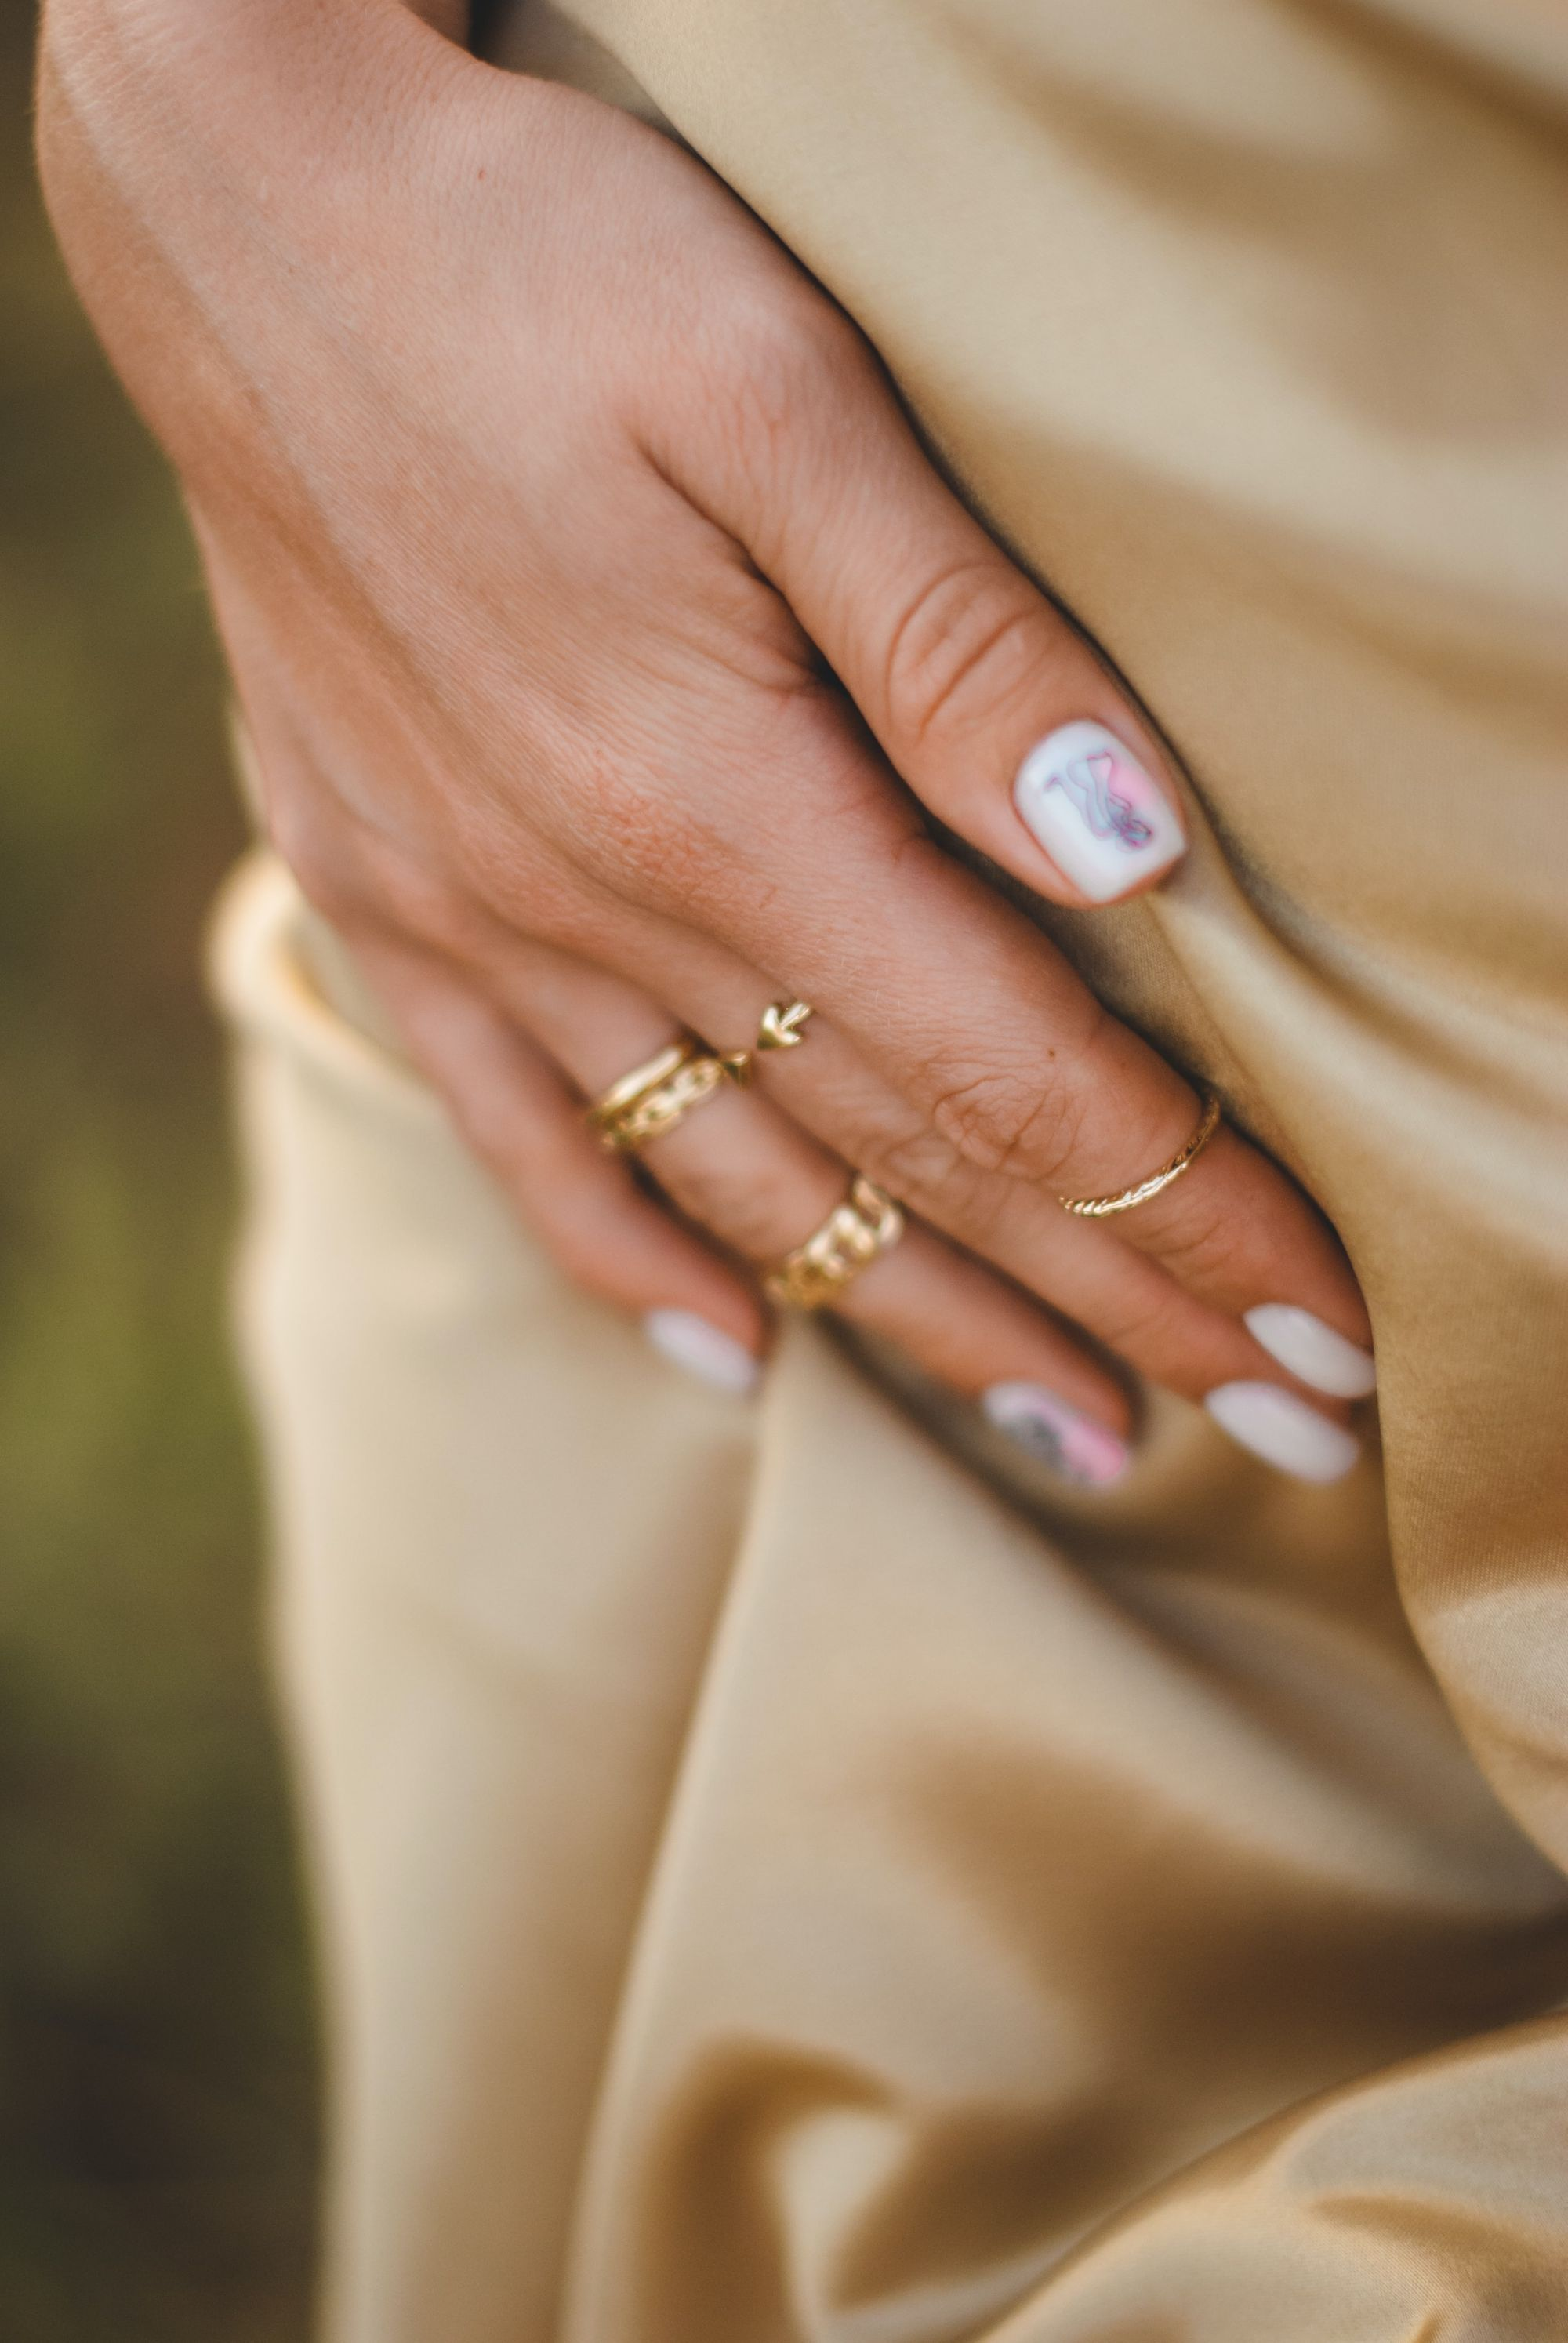 Top 5 Jewelry Trends (and 5 that are out)